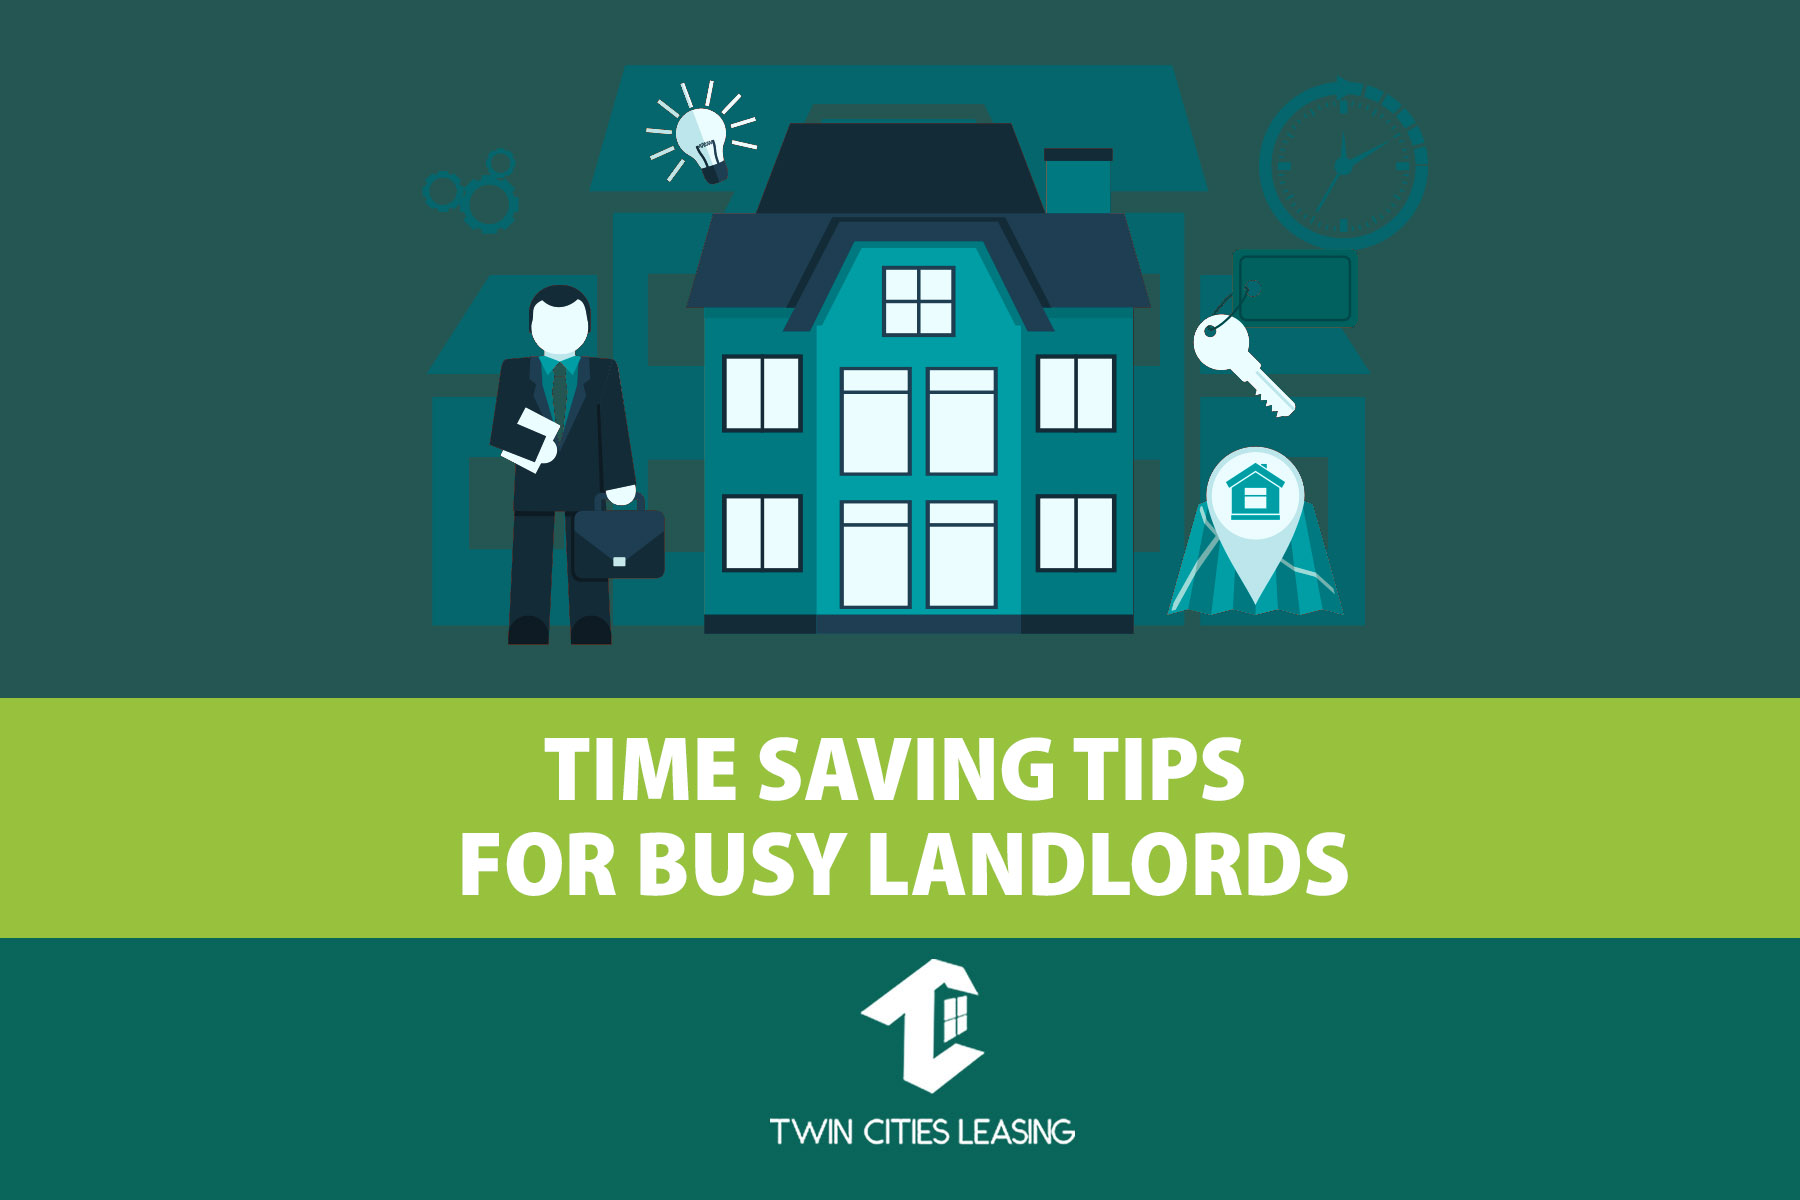 Time Saving Tips for Busy Landlords in the Twin Cities